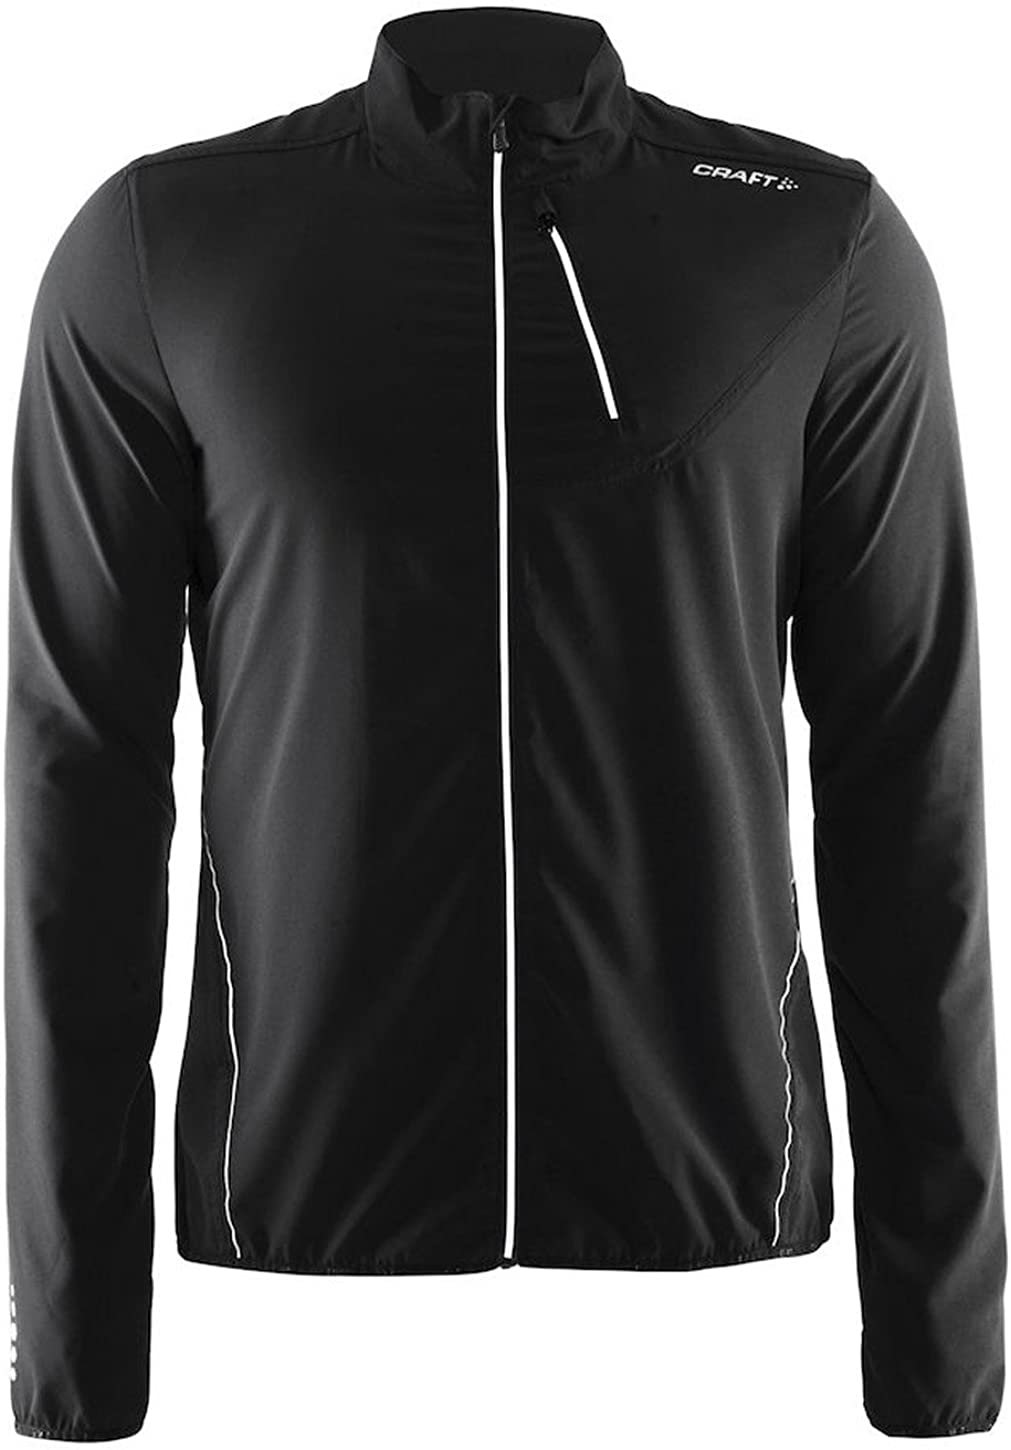 Craft Mens Mind Running and Training Fitness Jacket with Headphone Cord Solution